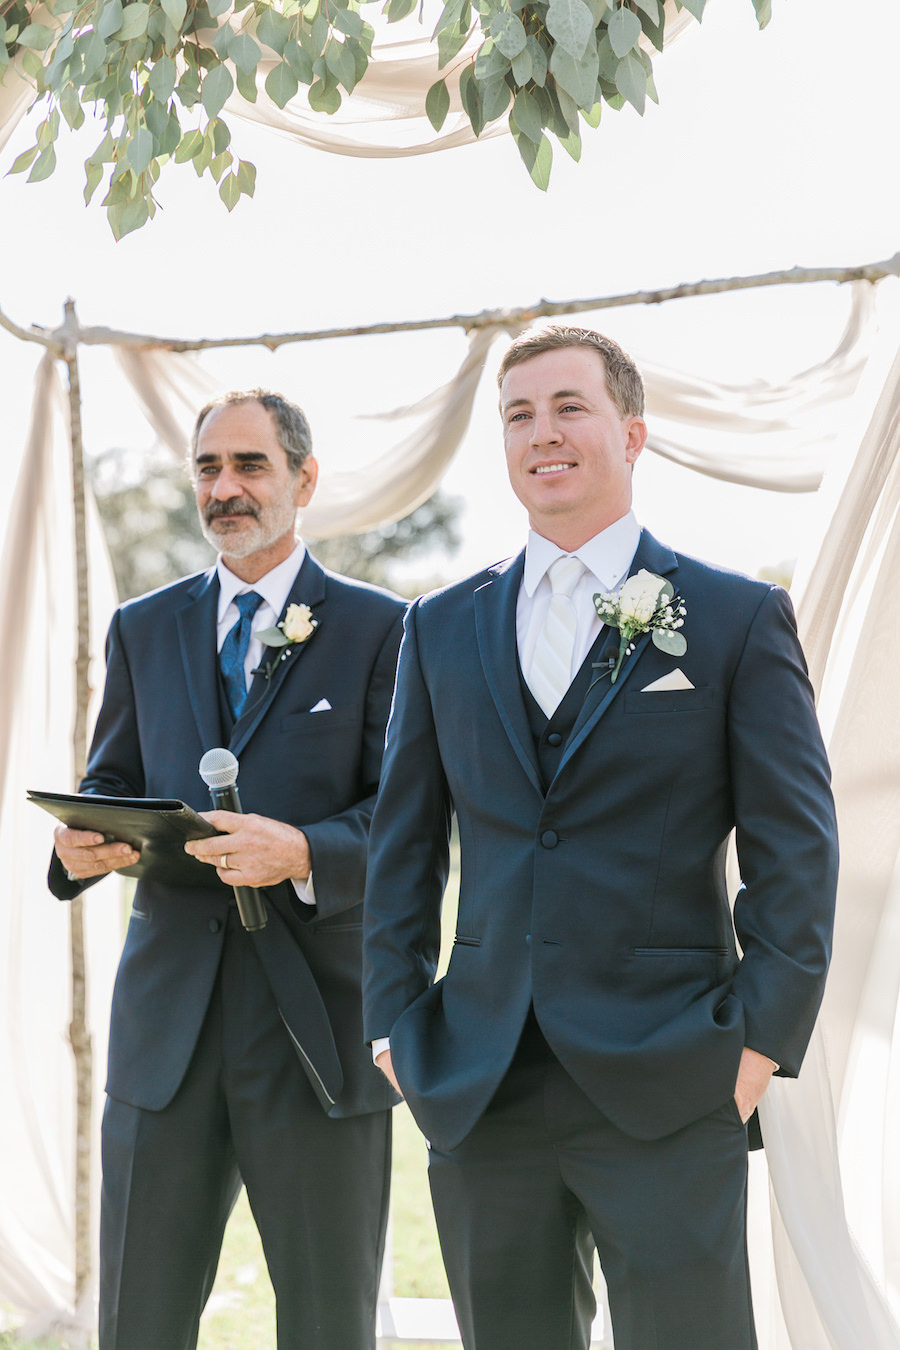 Groom's Reaction Wedding Portrait to Watching Bride Walk Down the Aisle